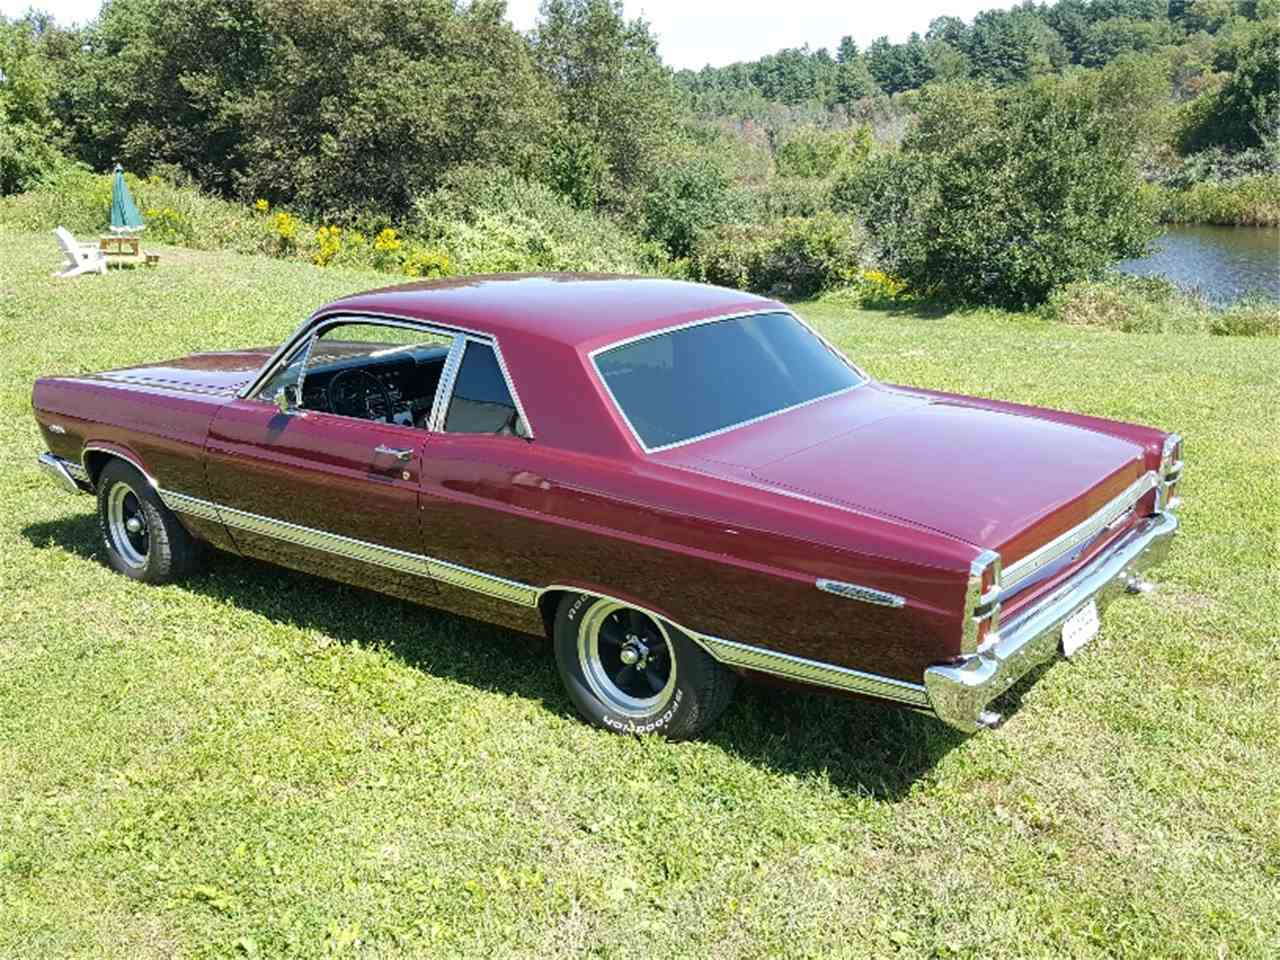 Large Picture of '67 Ford Fairlane 500 - $19,995.00 Offered by Woottons Redline Classic Cars - LT5G